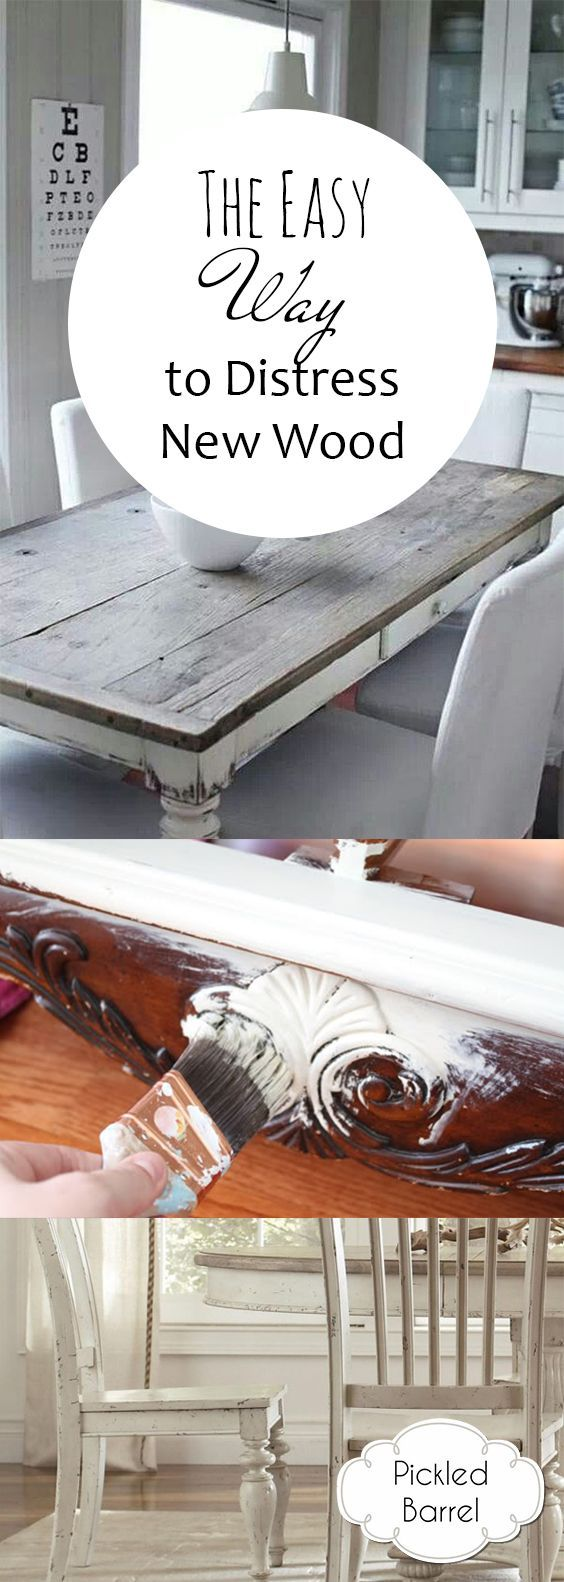 How To Distress Wood, Easy Ways To Distress Wood, Wood Distressing, DIY Wood